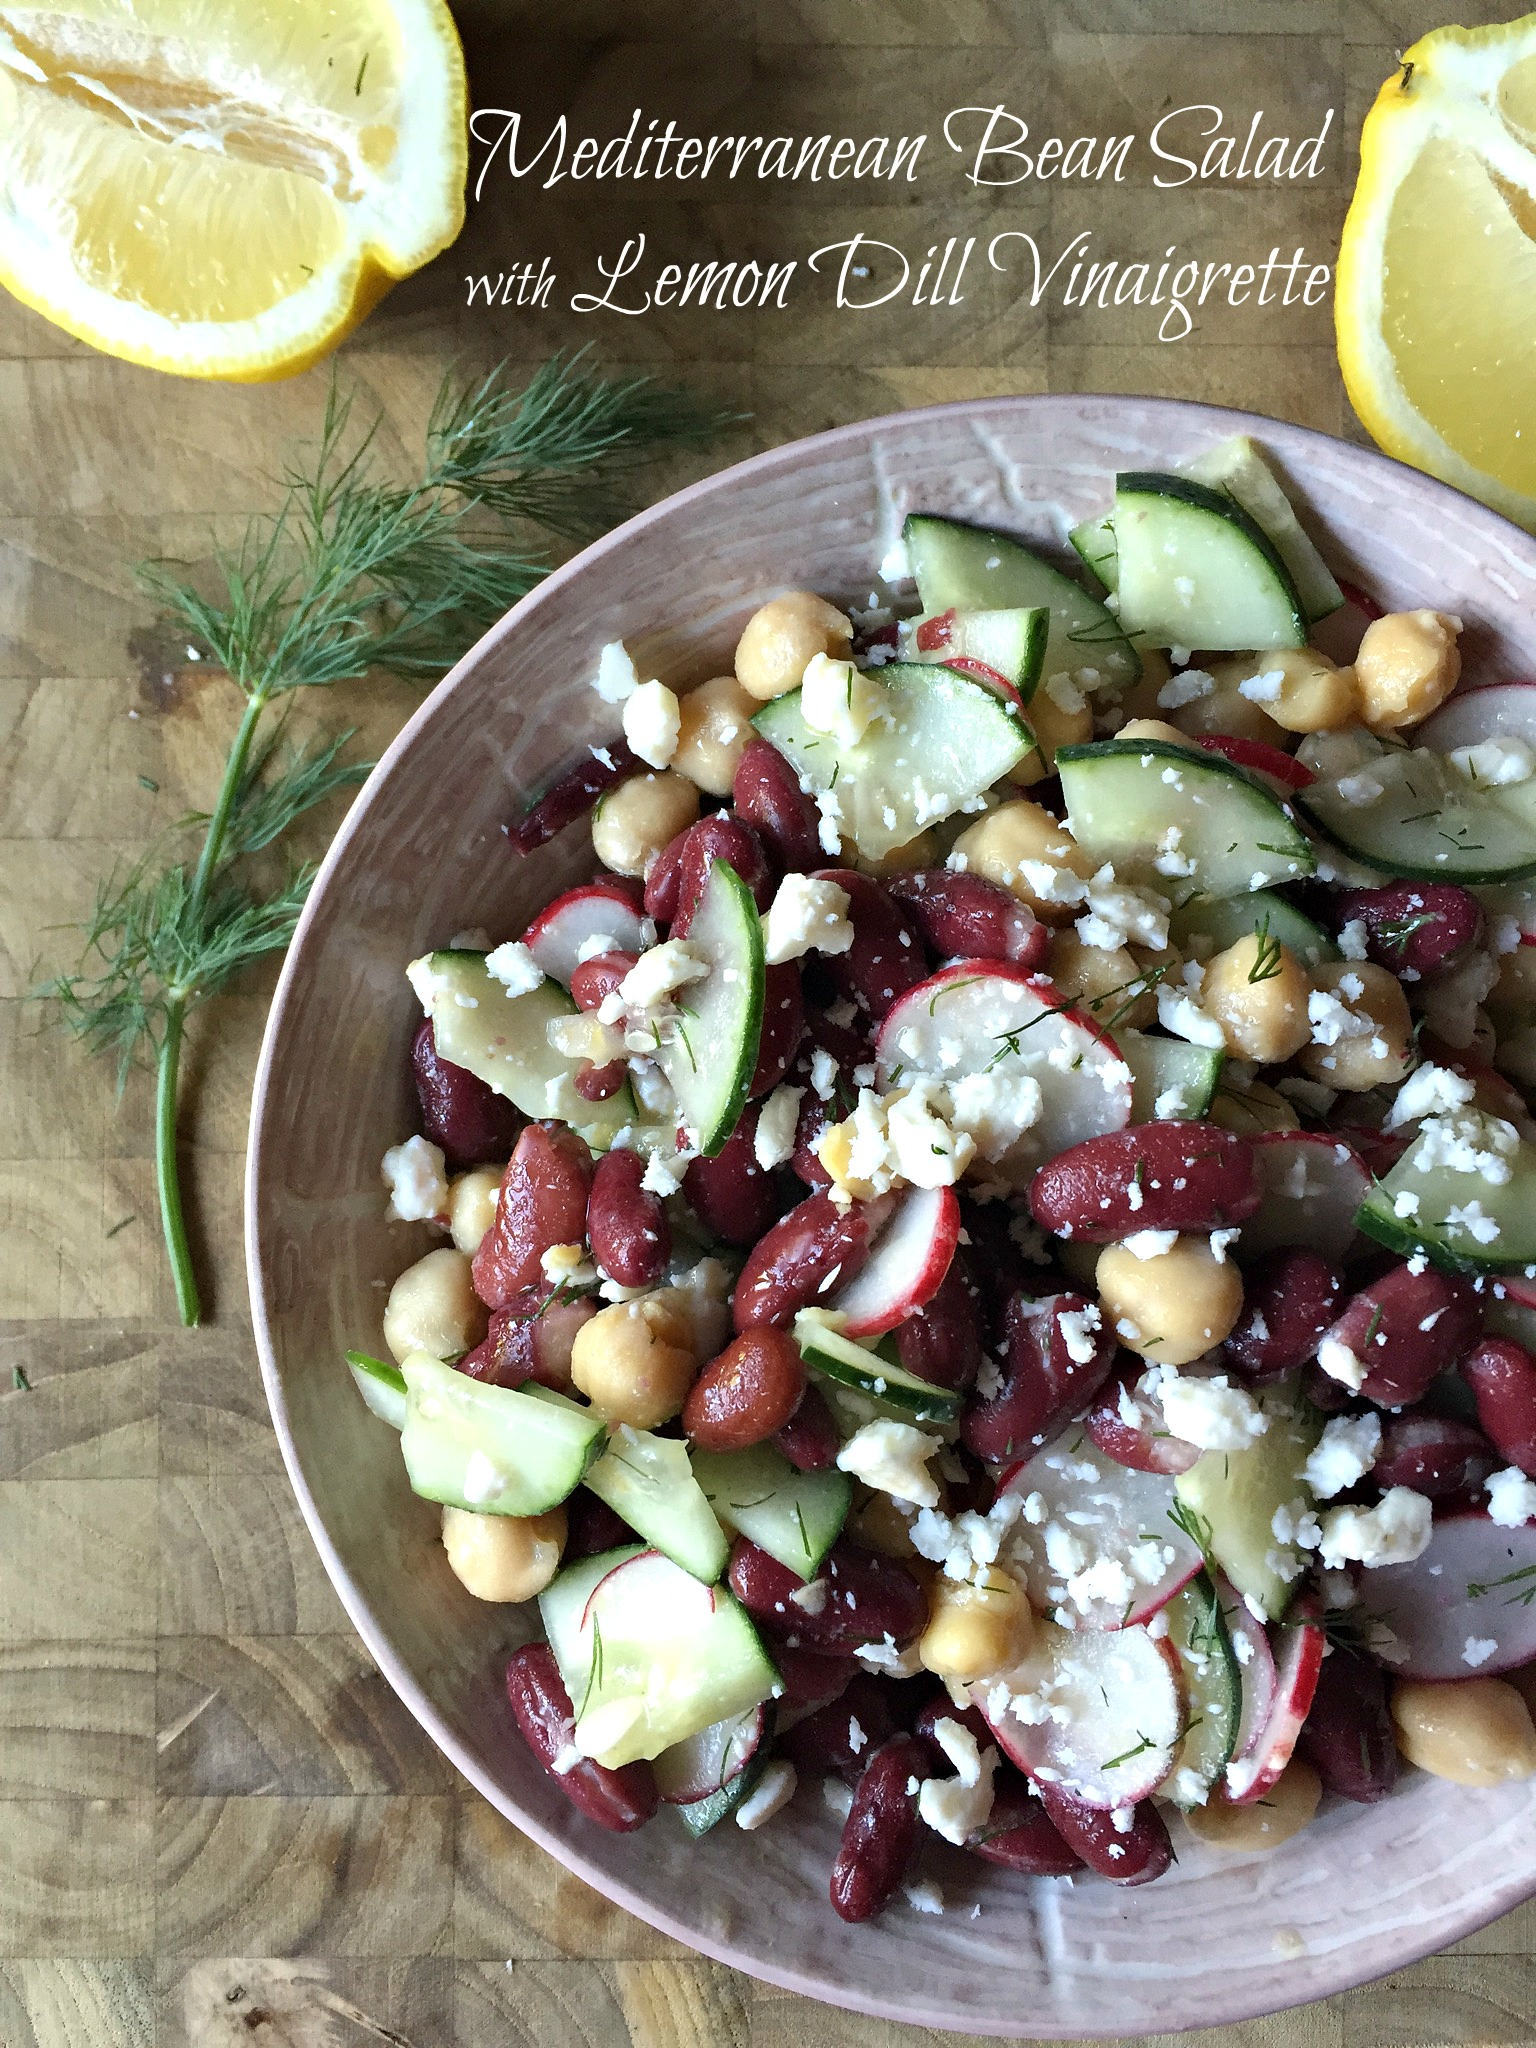 Mediterranean Bean Salad with Lemon Dill Dressing